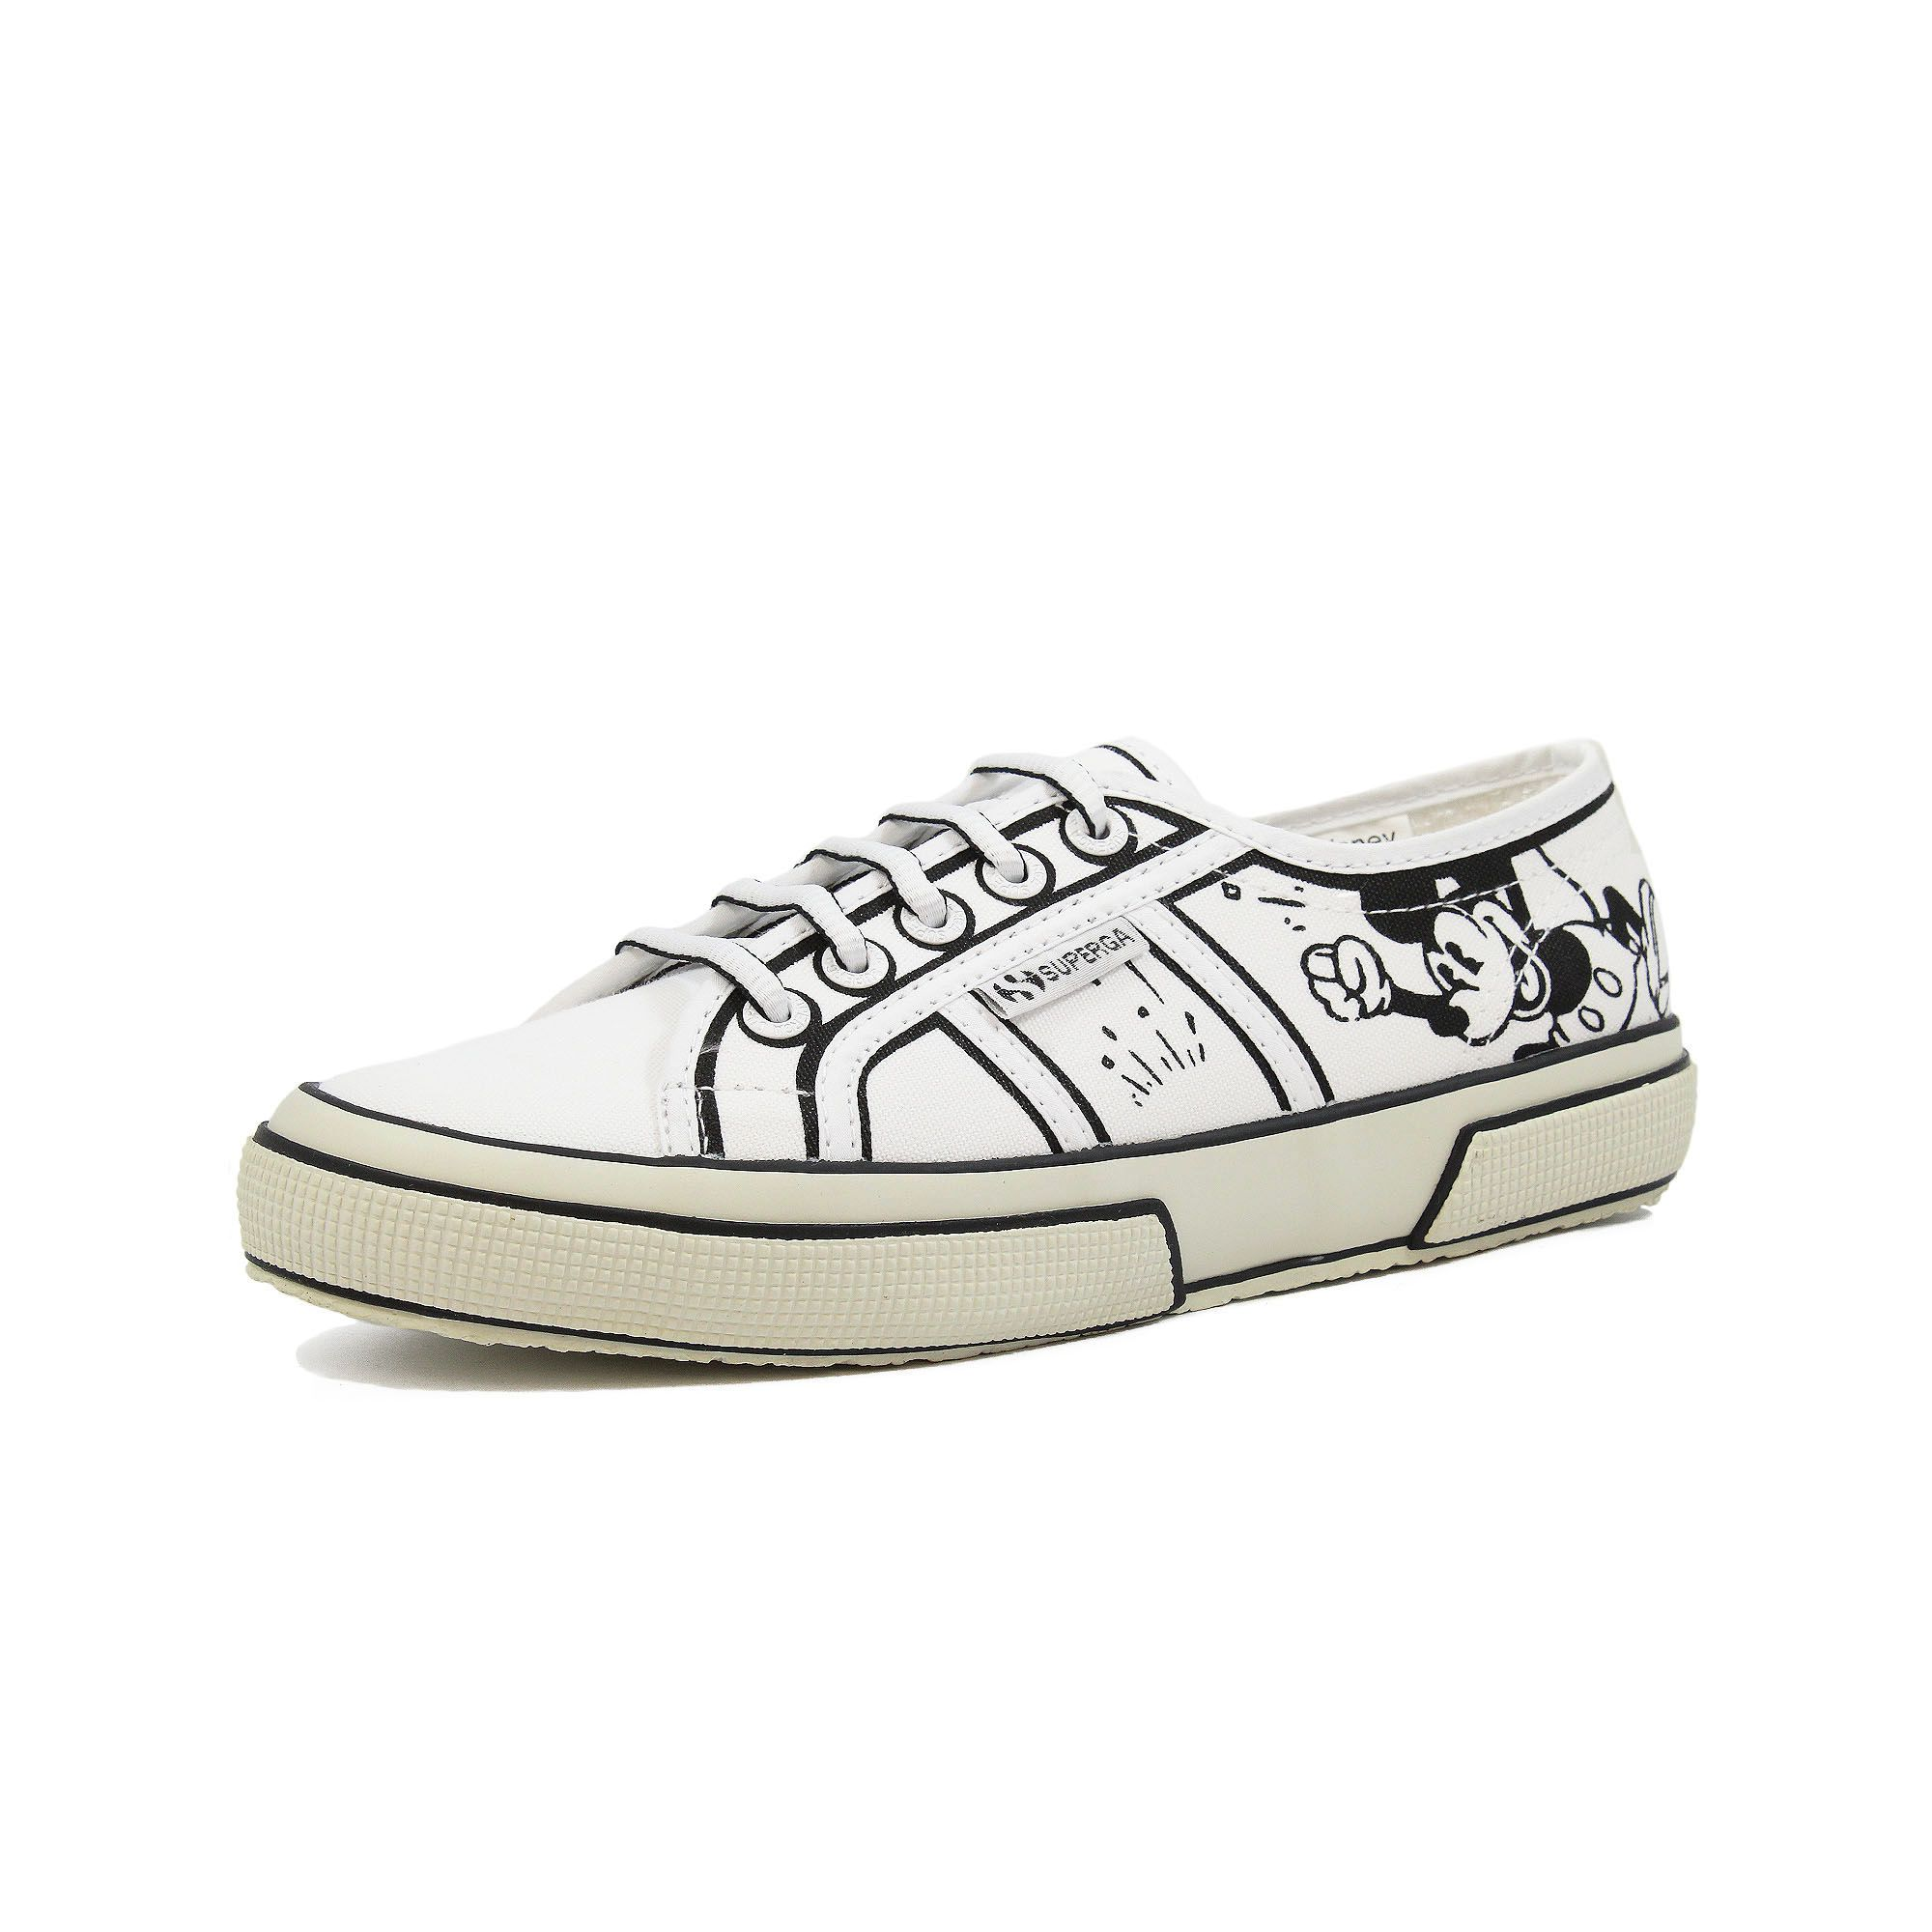 2750 CARTOON COMICSCOTU WHITE-BLACK